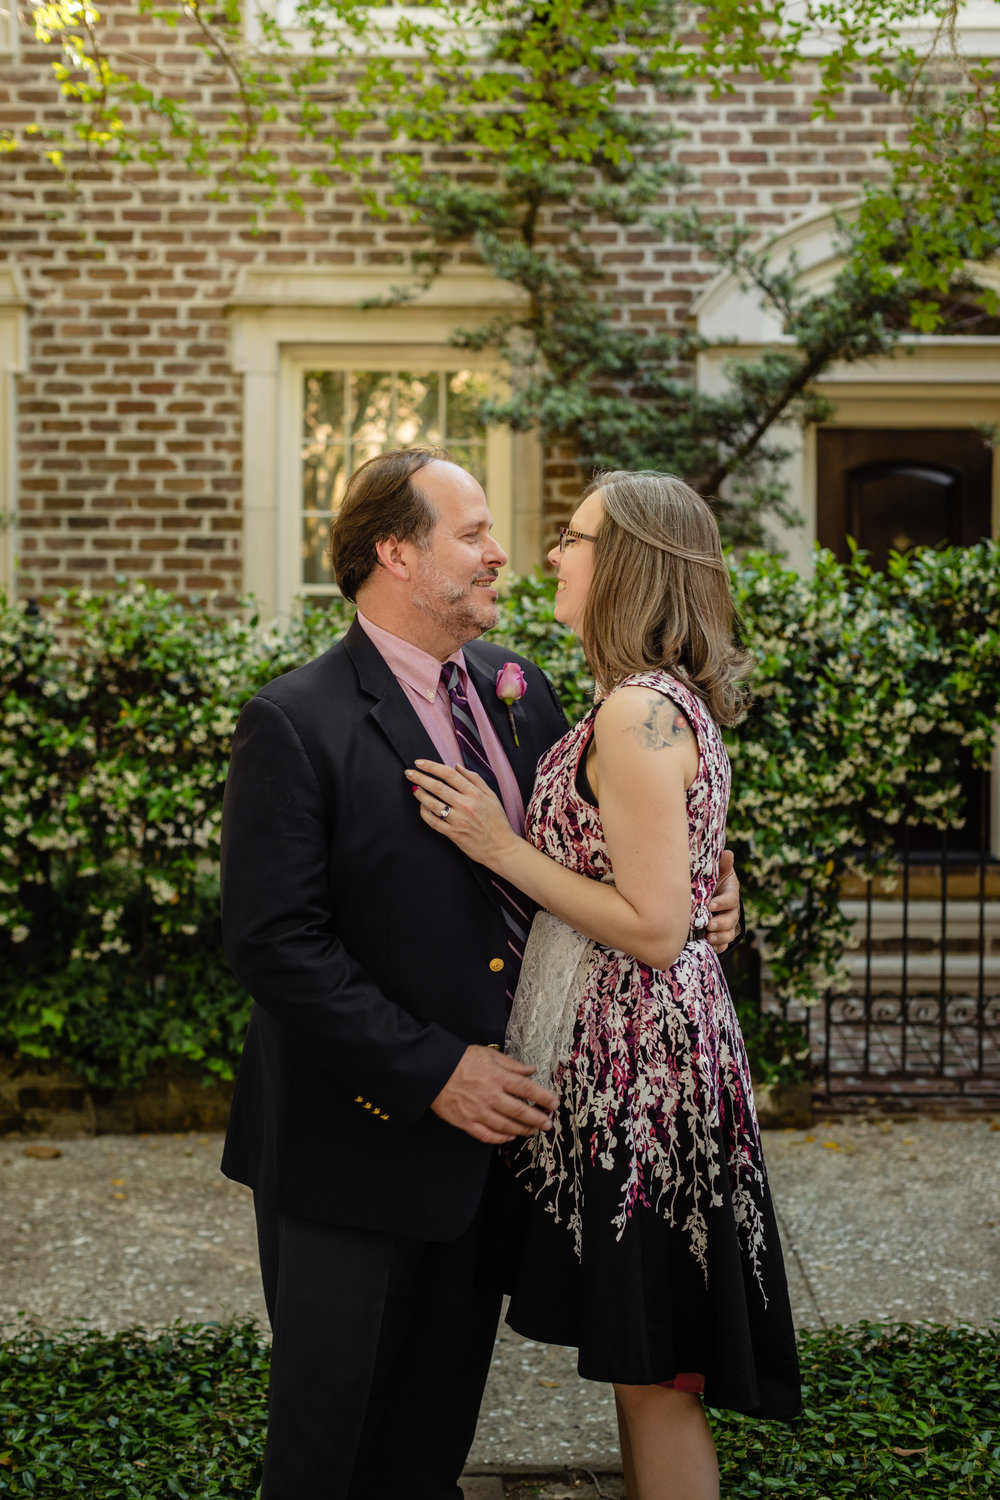 brei olivier photography wedding photographer st louis jackson square savannah ga parish photo company troup square savannah elopement elope-88.jpg